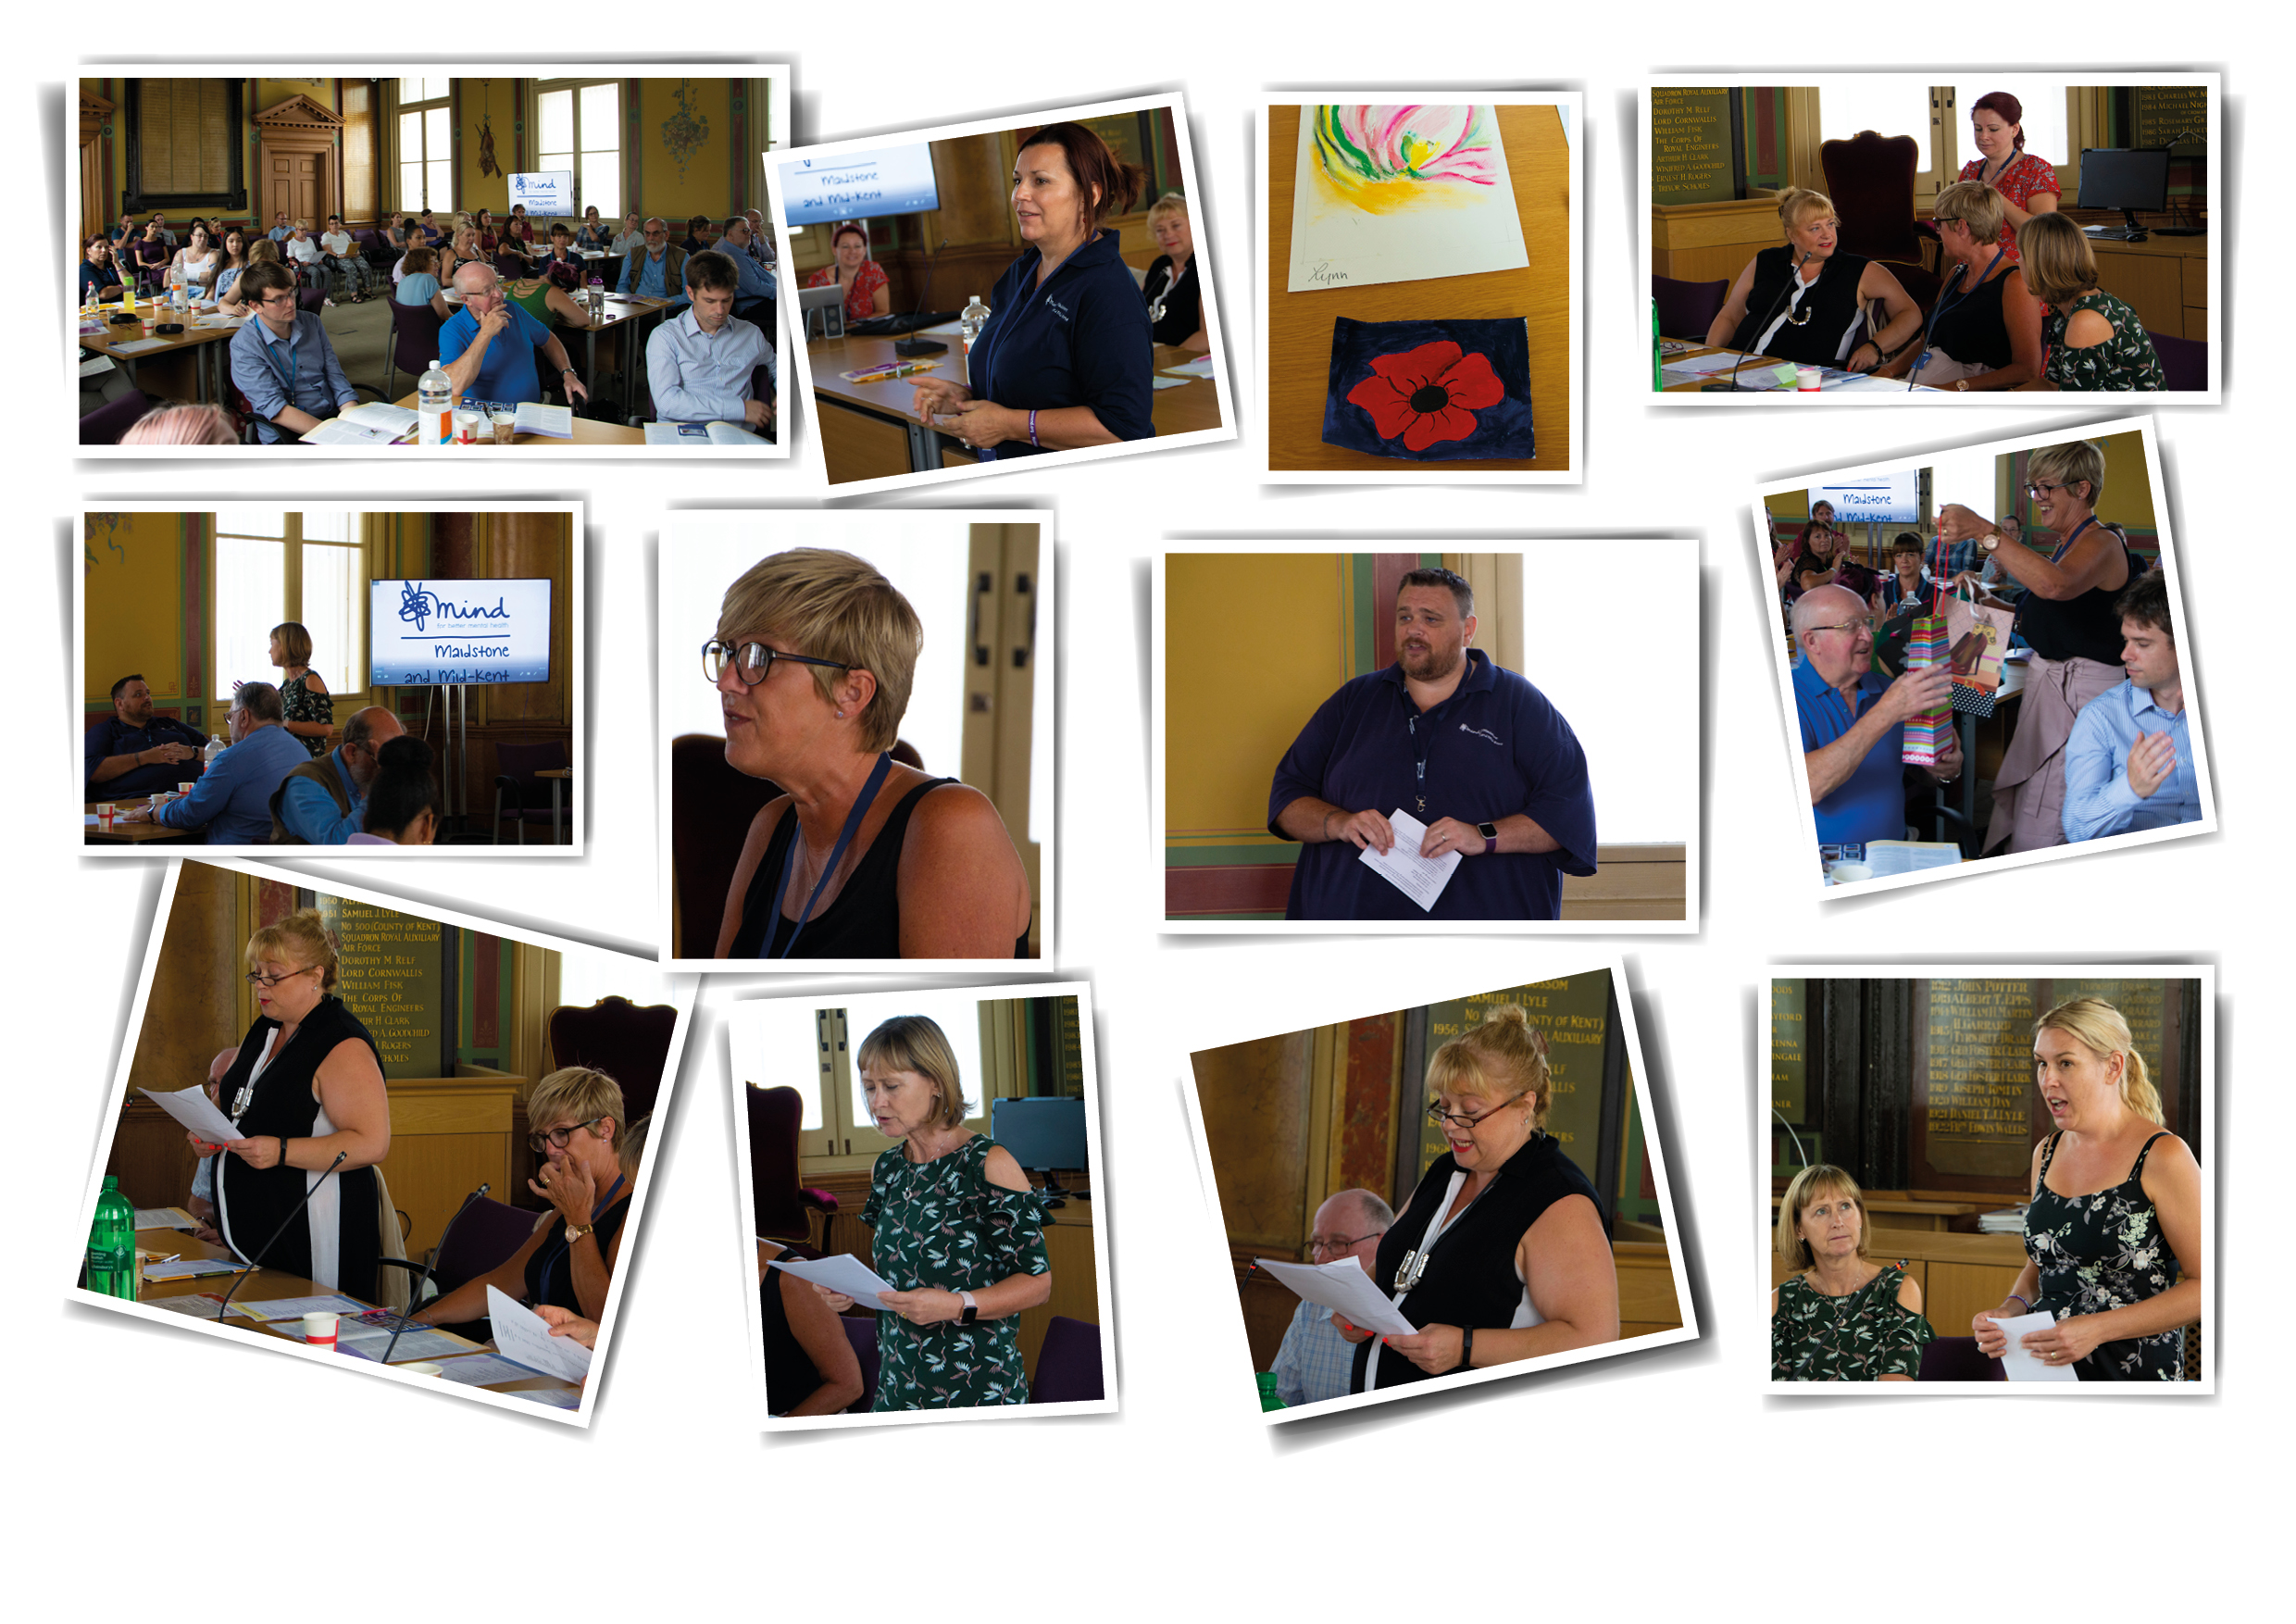 2018 AGM in Maidstone. Photos from our 2018 AGM in Maidstone. First photograph shows the audience sitting in the council chamber at Maidstone Town Hall. Second photograph shows Suzanne giving a talk at the event. The third photo is some colourful artwork of line art and a poppy presented by a service user. The fourth photo shows Sue, Julie, Hazel and Heidi conversing. The fifth photo demonstrates some of the attendees networking. The sixth photo shows Julie looking out at the audience. The seventh photo shows James giving a presentation to audiences. The eighth photo shows Julie handing a gift to a volunteer who has helped the organisation. The ninth photo shows Sue presenting the Chairperson's speech to the audience. The tenth photo shows Hazel presenting the treasurer's findings. The eleventh photo is another photo of Sue's speech. The twelfth photo is a photo of Nicky Underwood talking about Therapeutic Drumming.